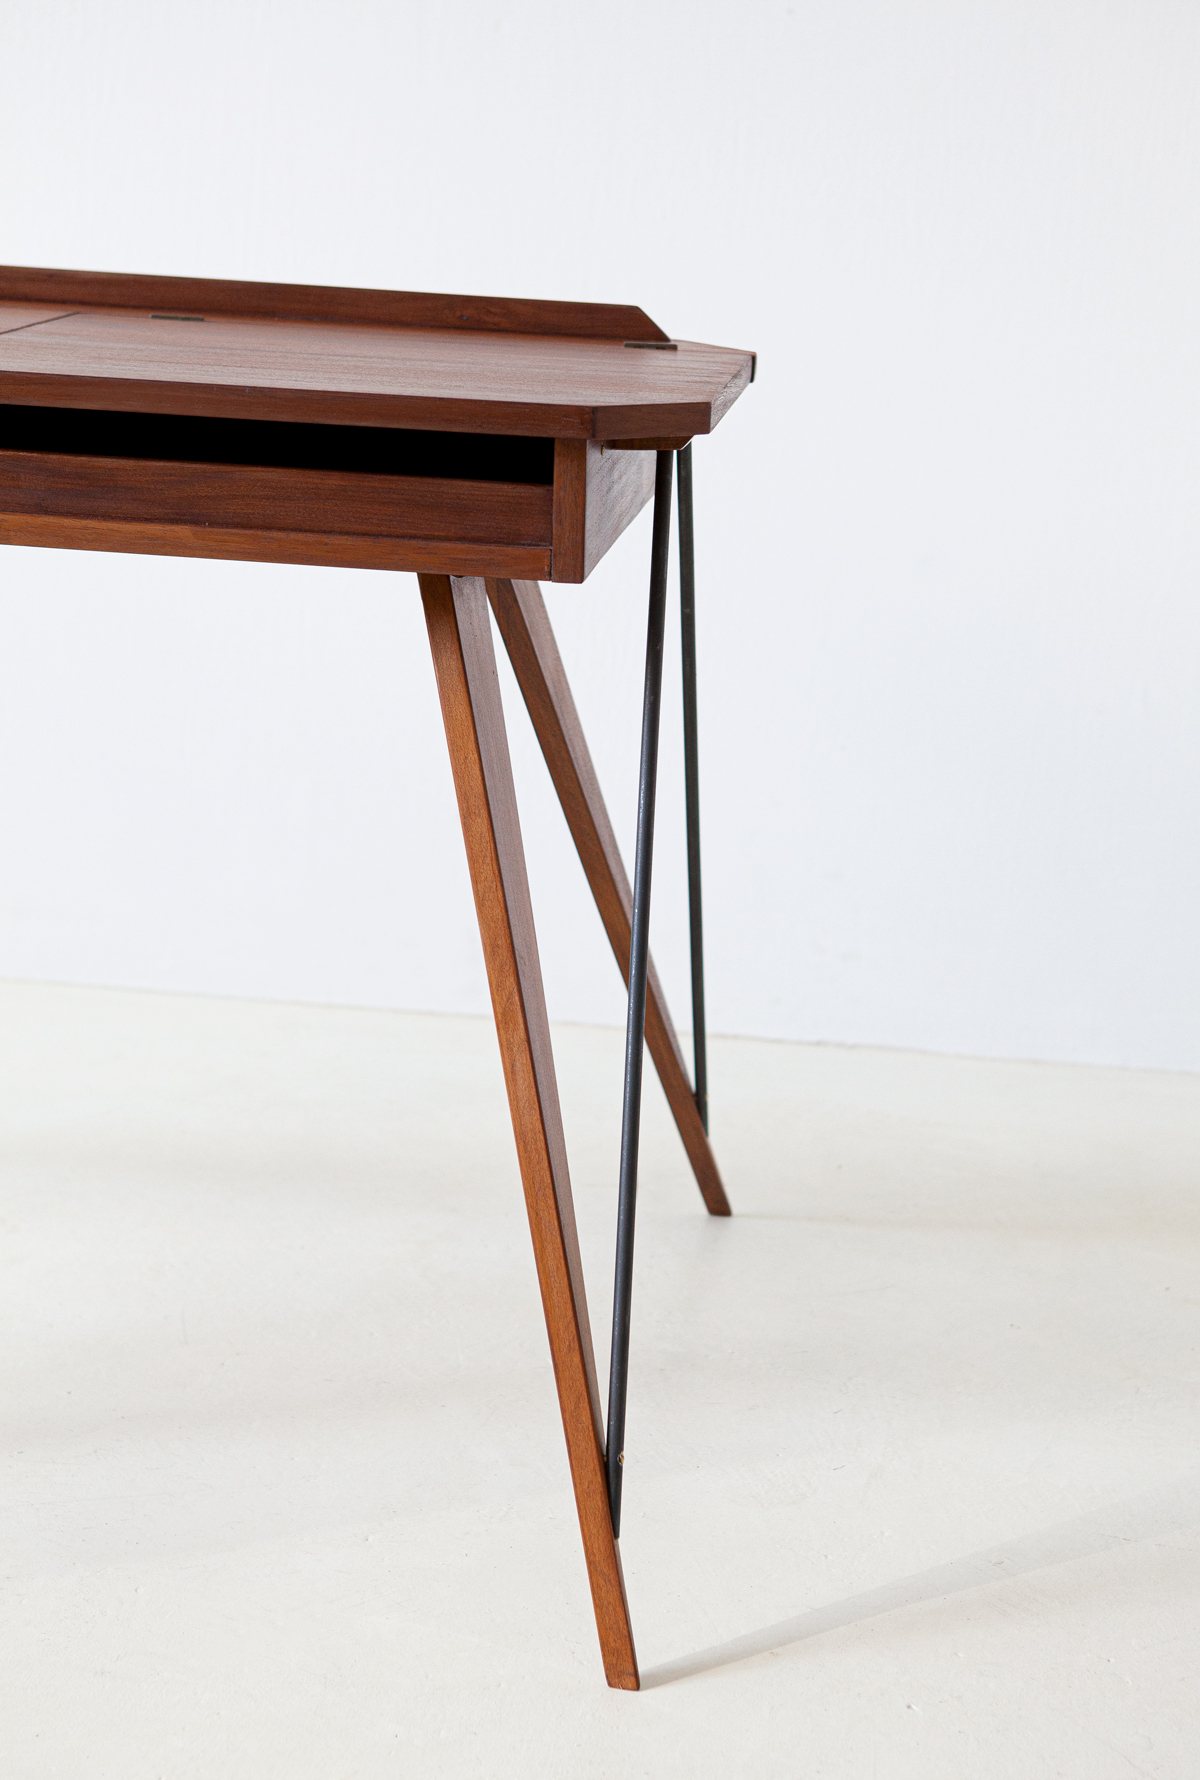 1950s-modern-console-desk-with-compass-legs-3-dt33